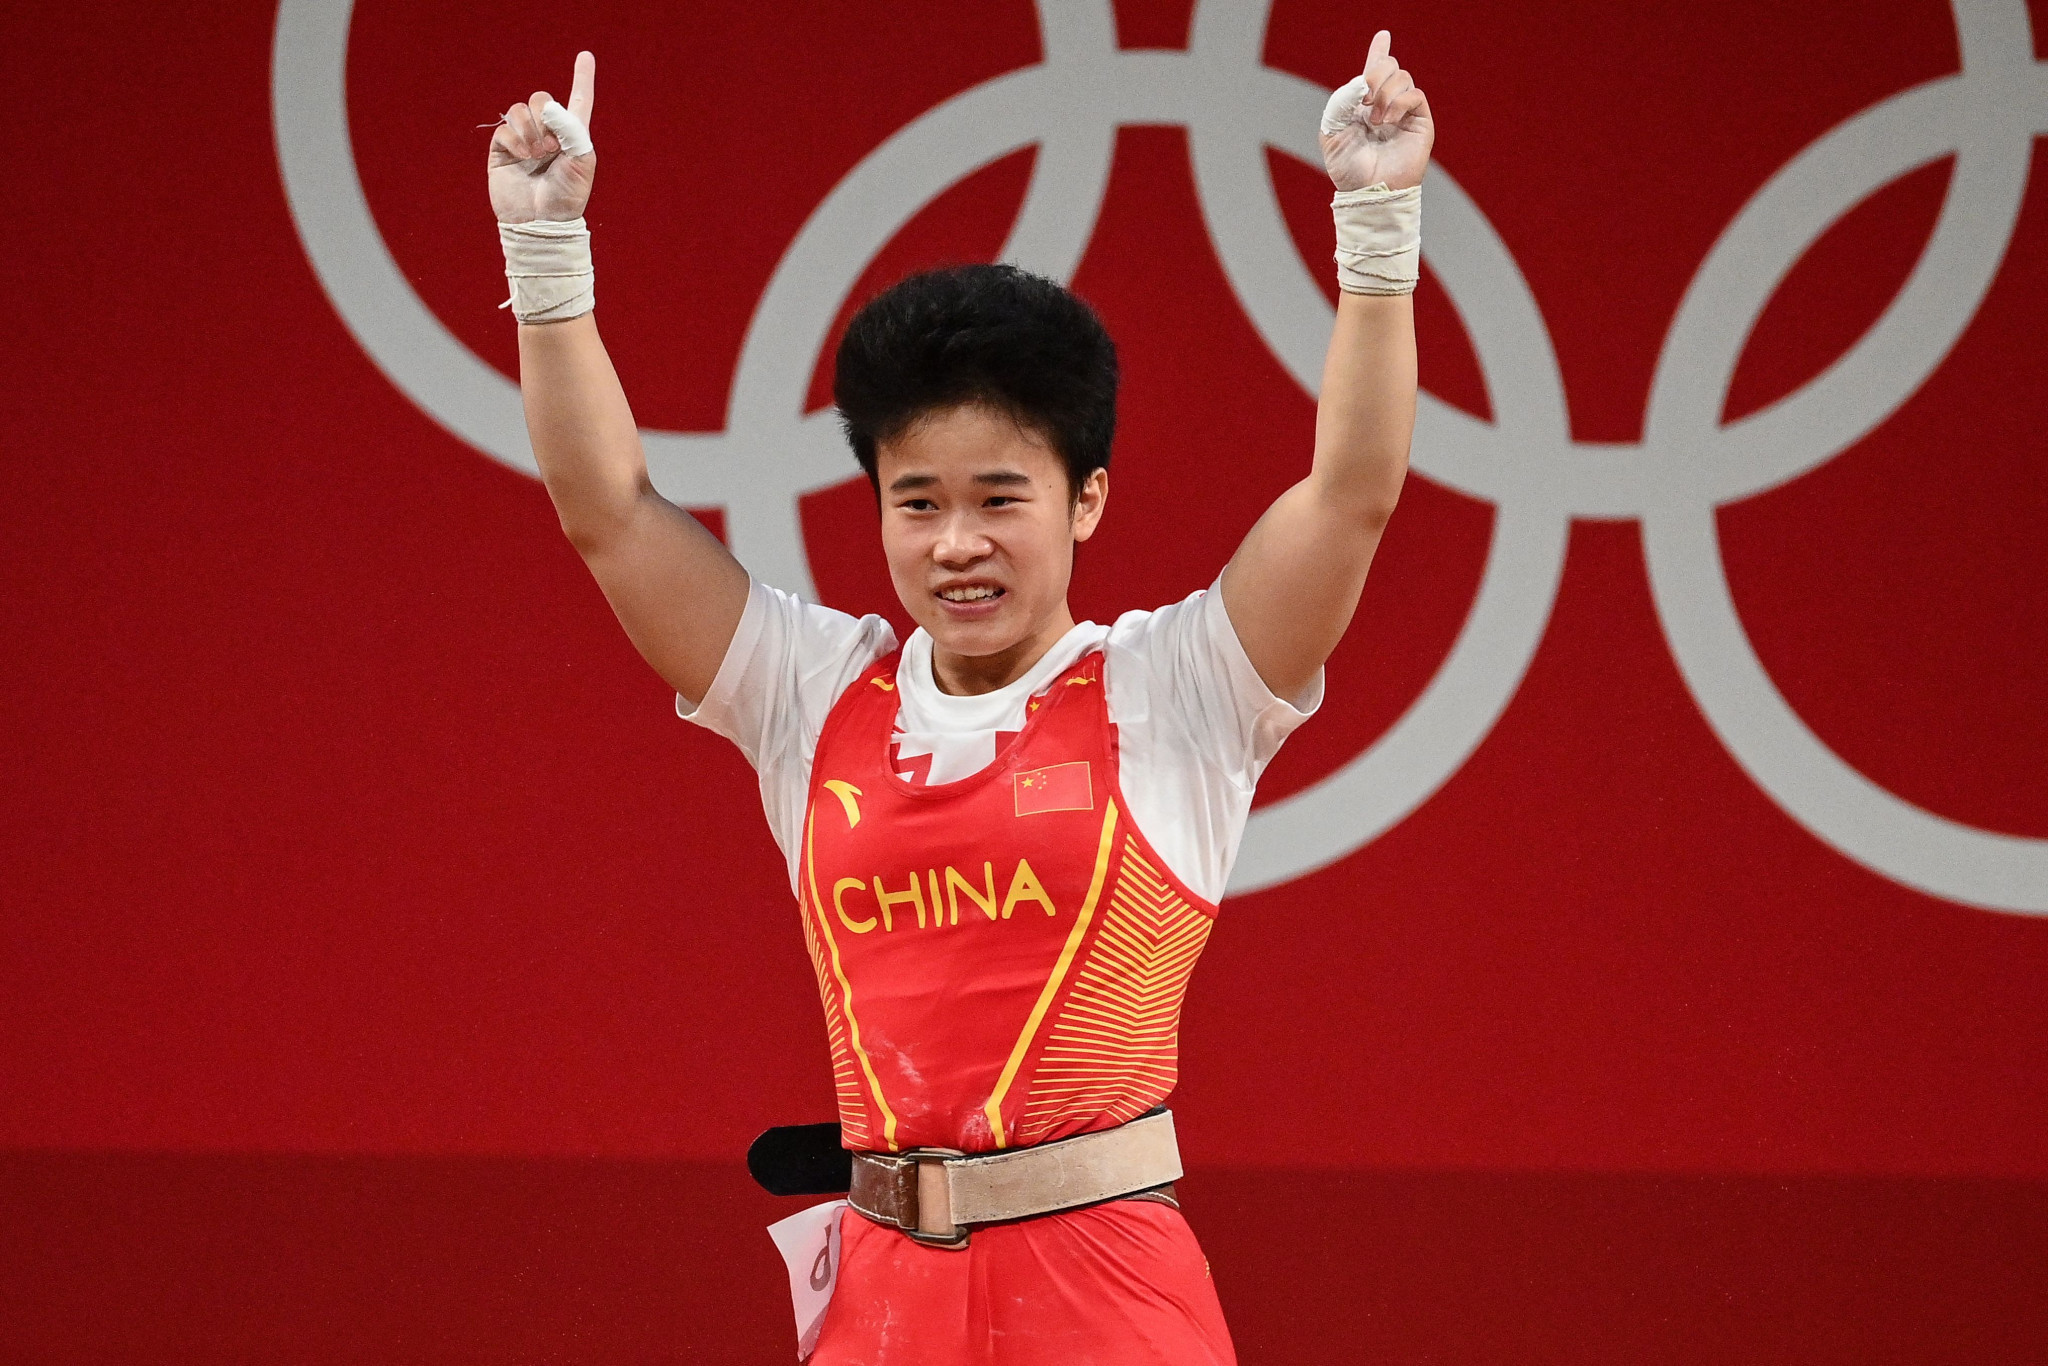 Gold for China and disappointment for United States in first weightlifting event of Tokyo 2020